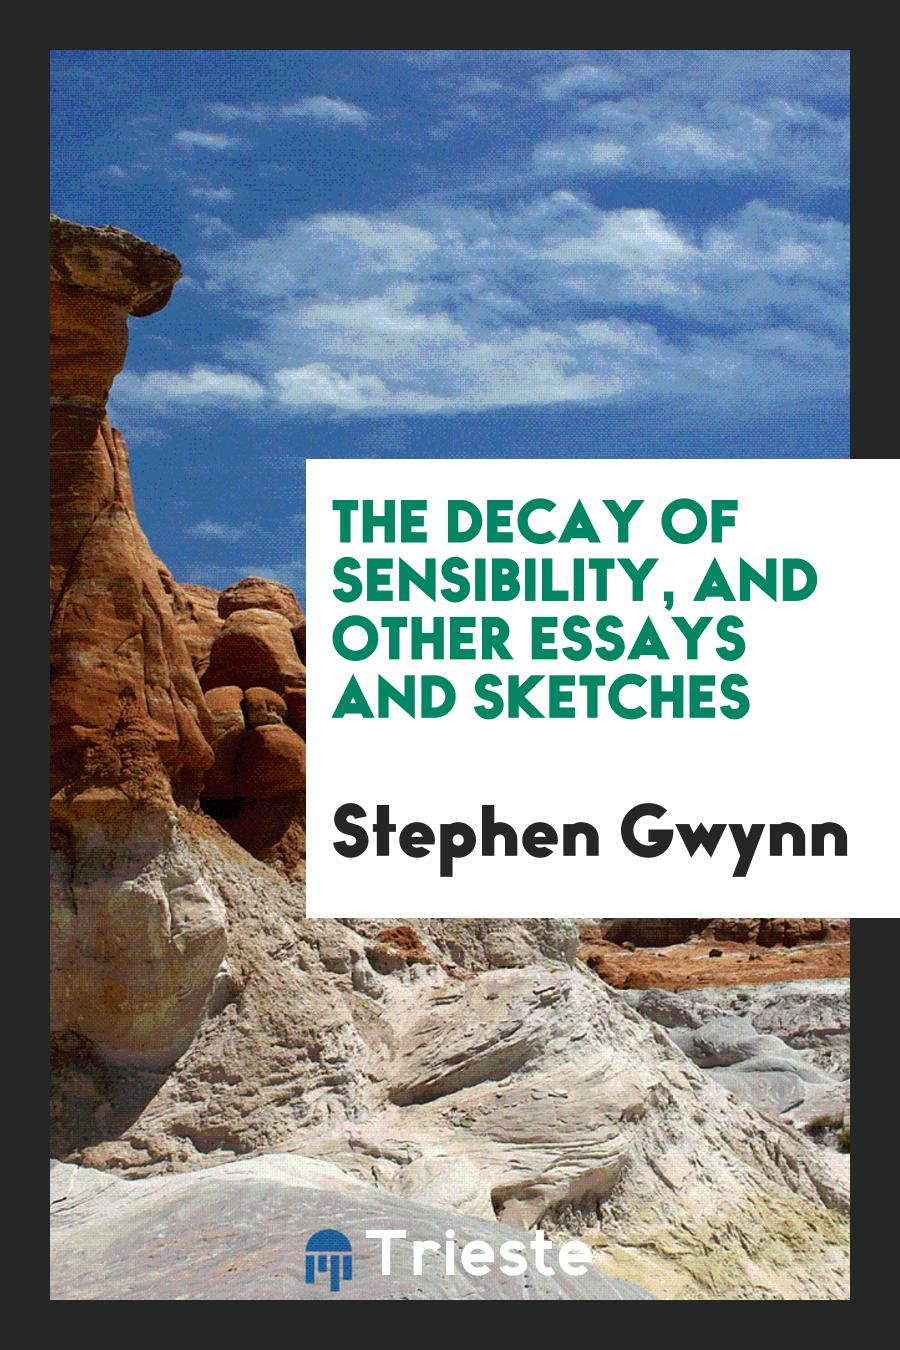 The Decay of Sensibility, and Other Essays and Sketches